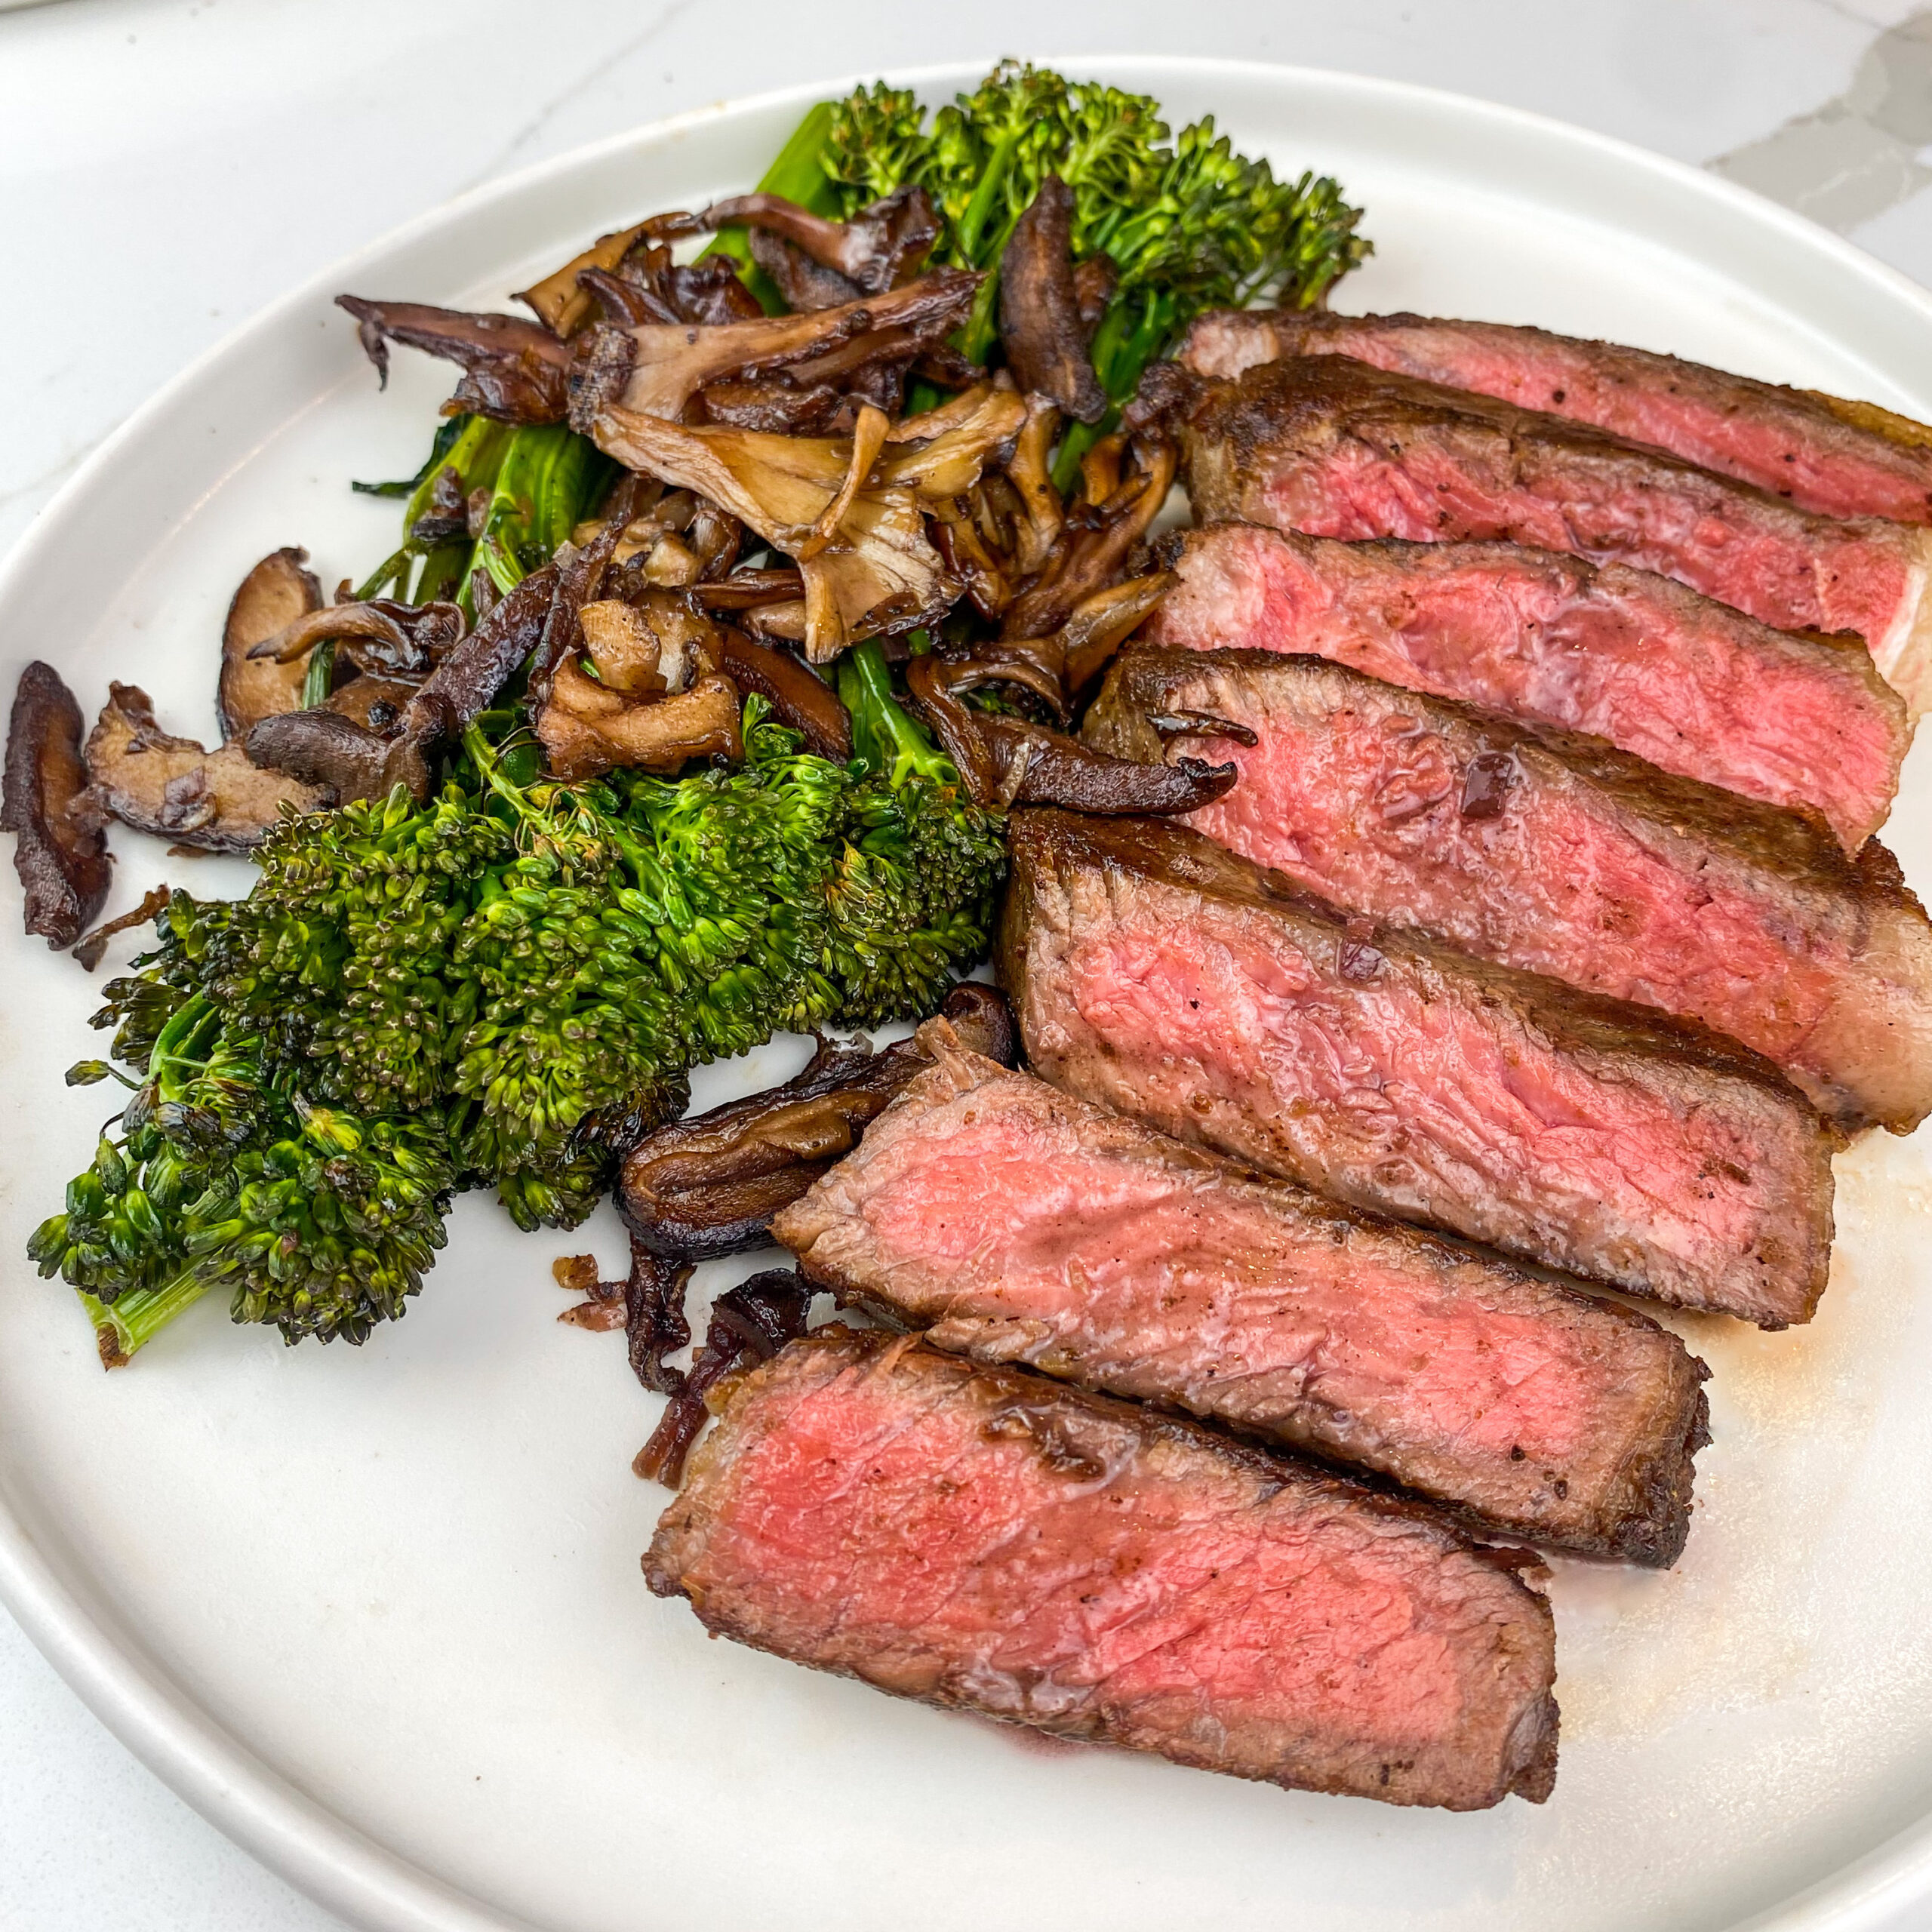 pan seared steak with red wine glazed mushrooms